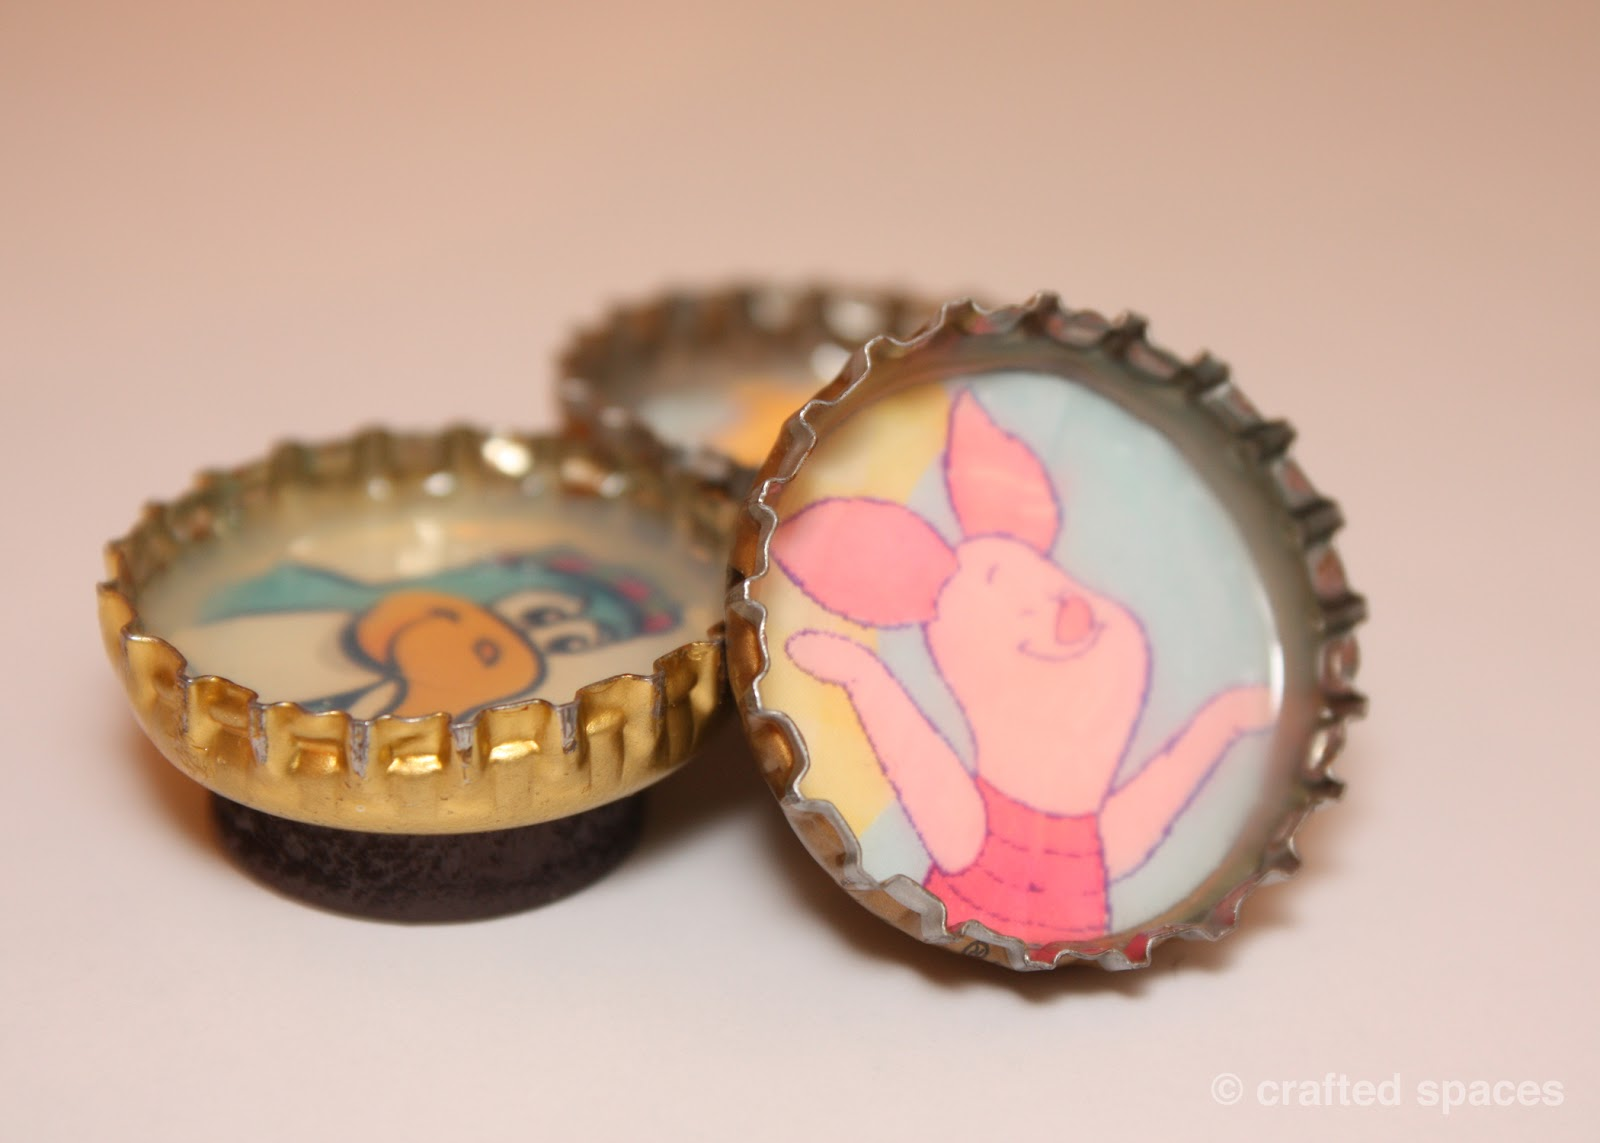 Crafted spaces crafty idea bottle cap magnet for Cap crafter